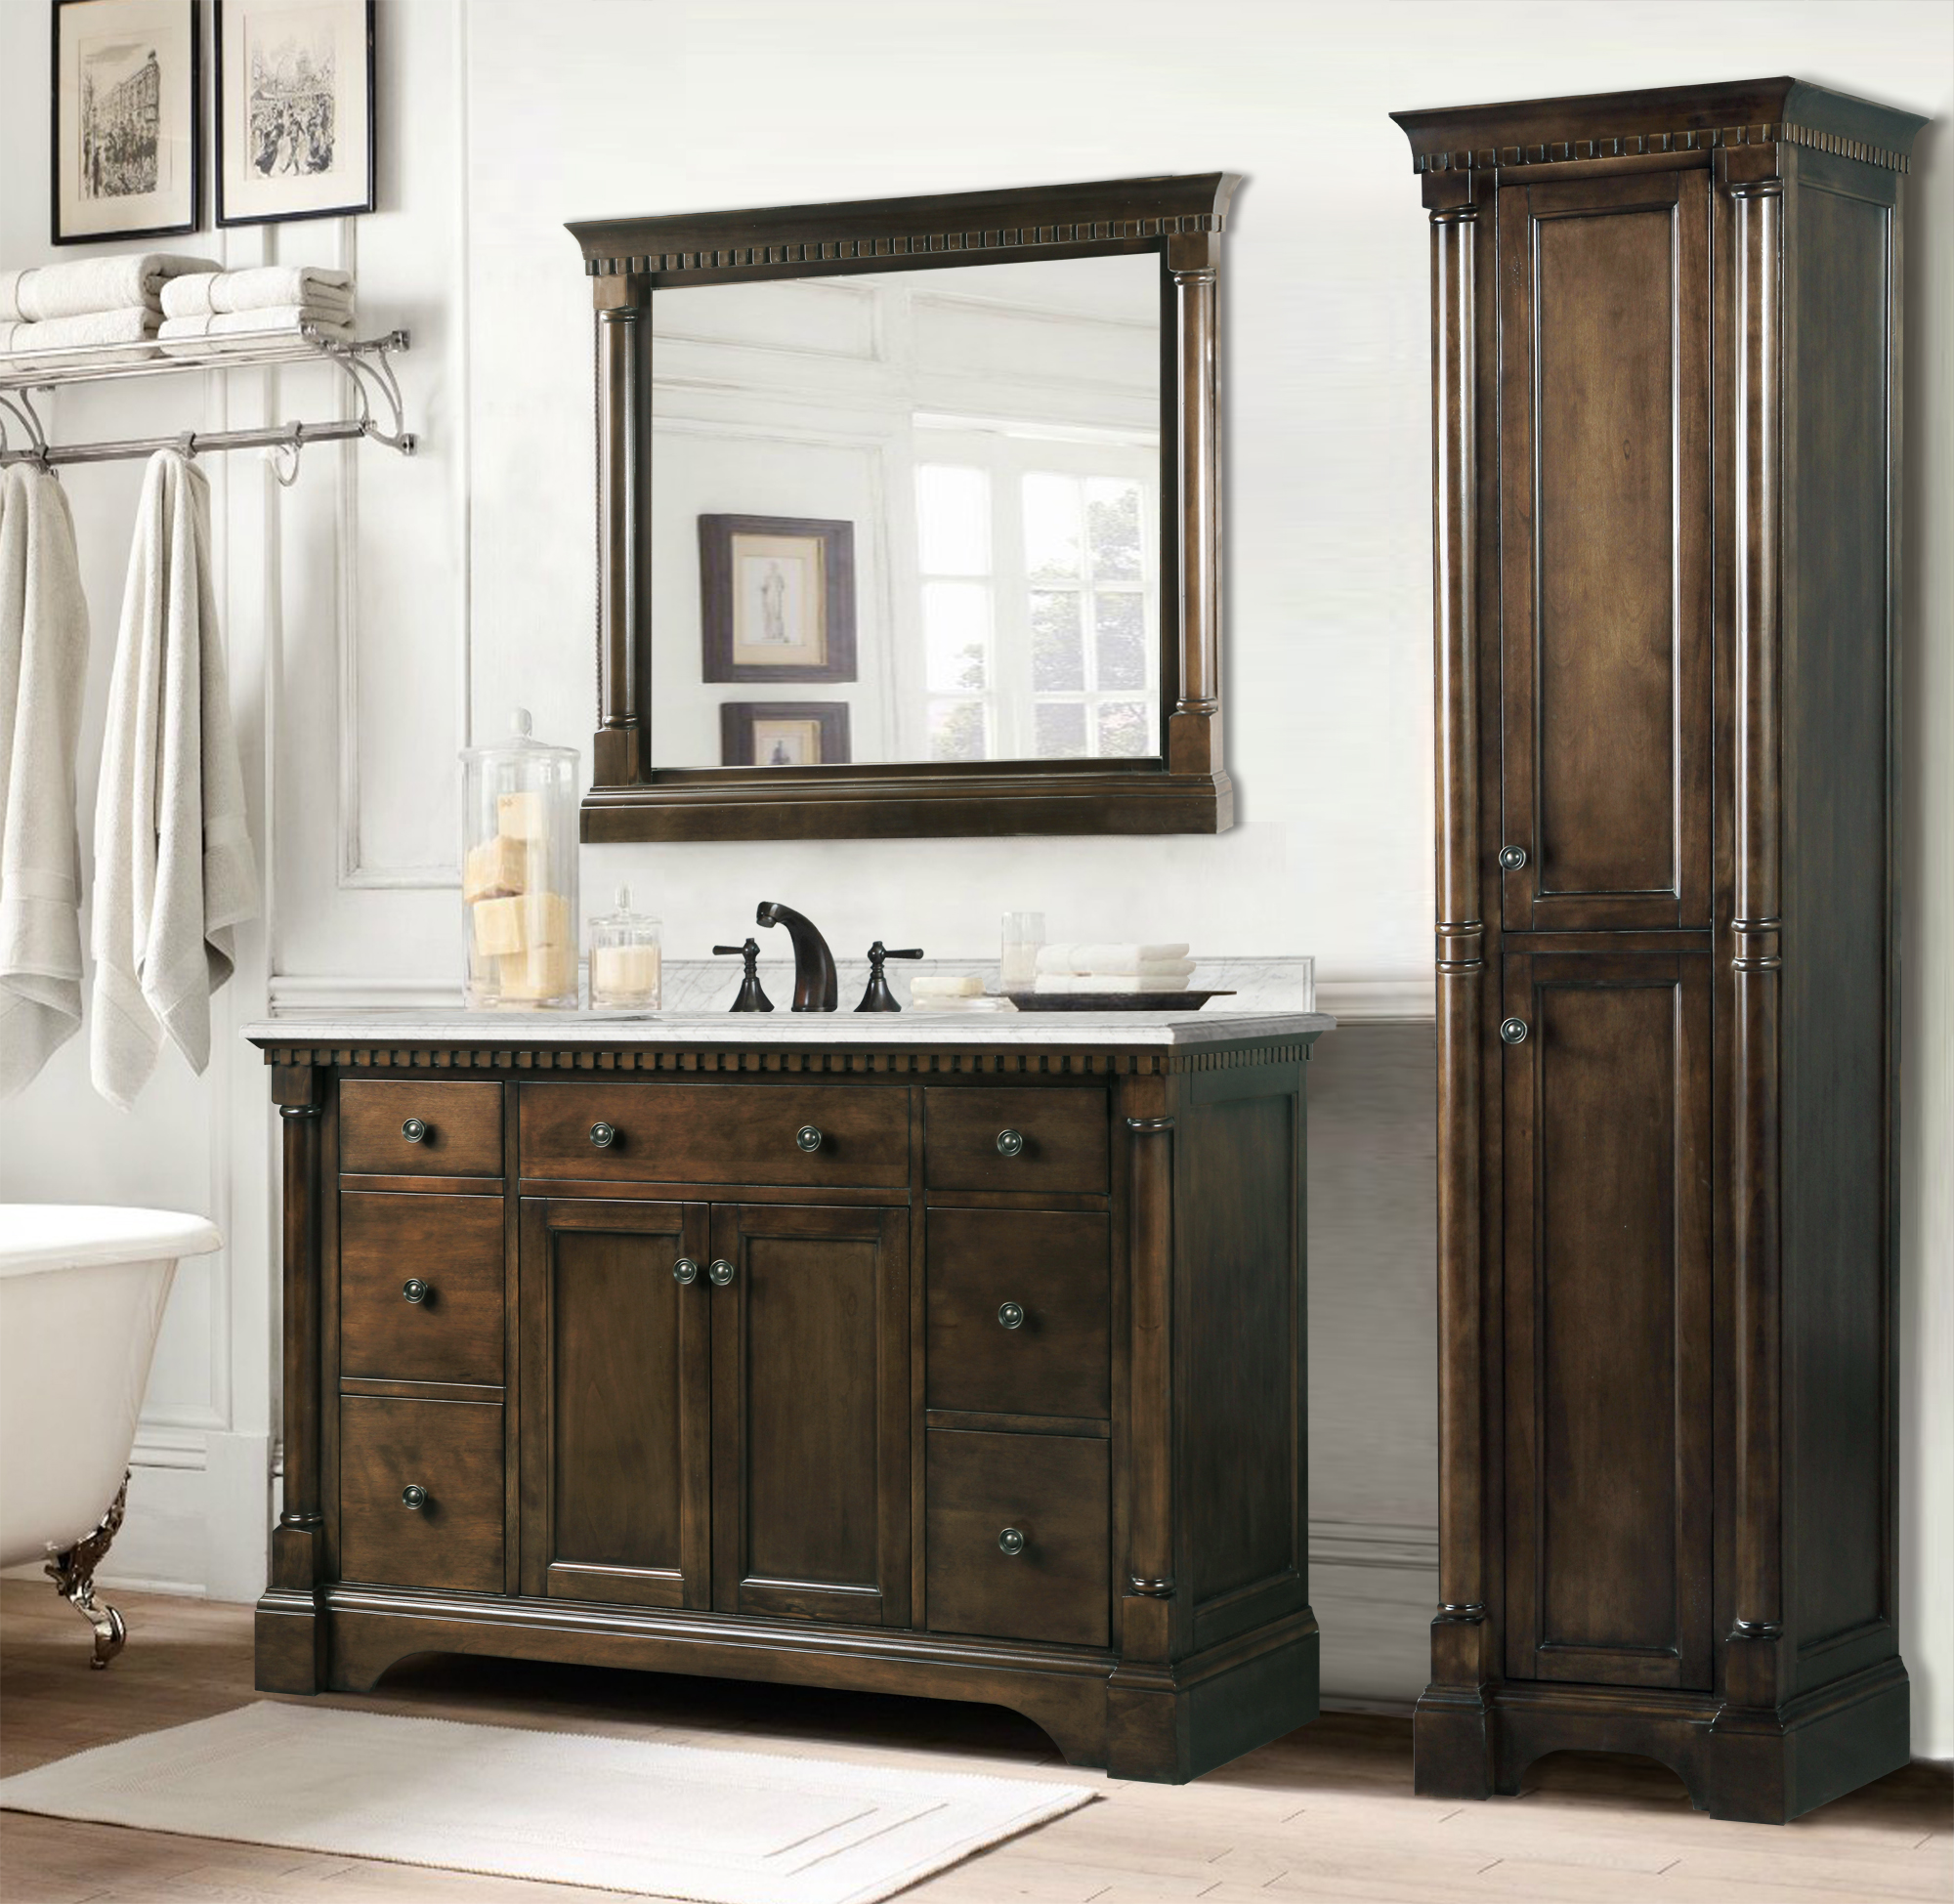 Bathroom Vanities Remodel many people are looking for new bathroom vanities to remodeling